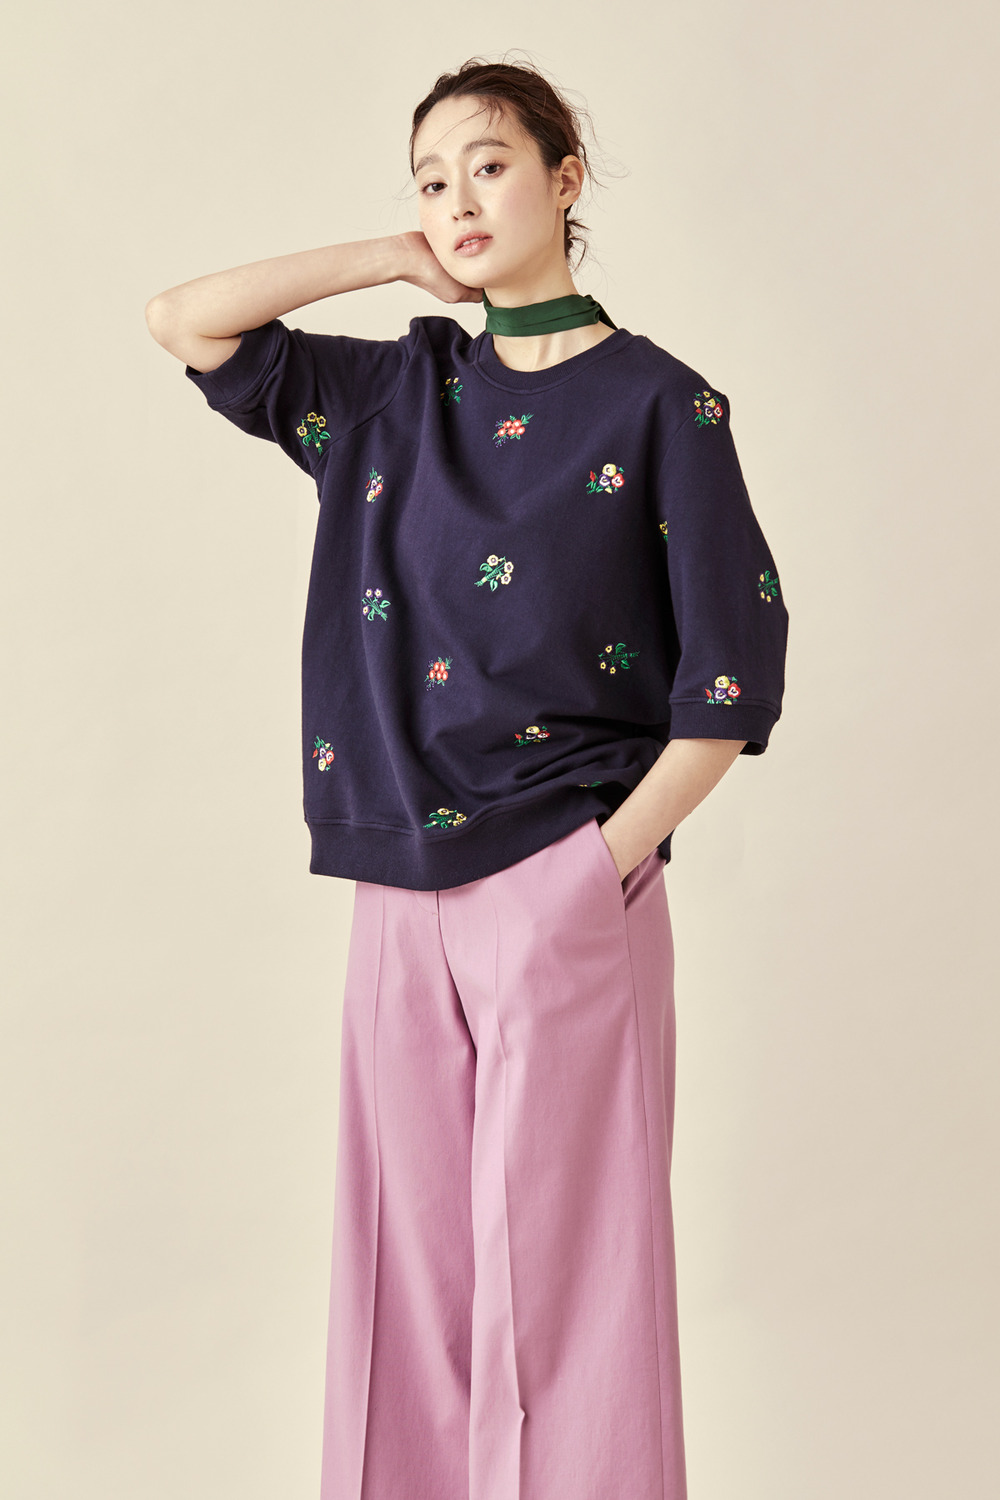 Embroidered Flower Bouquet Sweatshirt - Half Sleeve (네이비 리오더중. 5월 첫째주 발송가능)